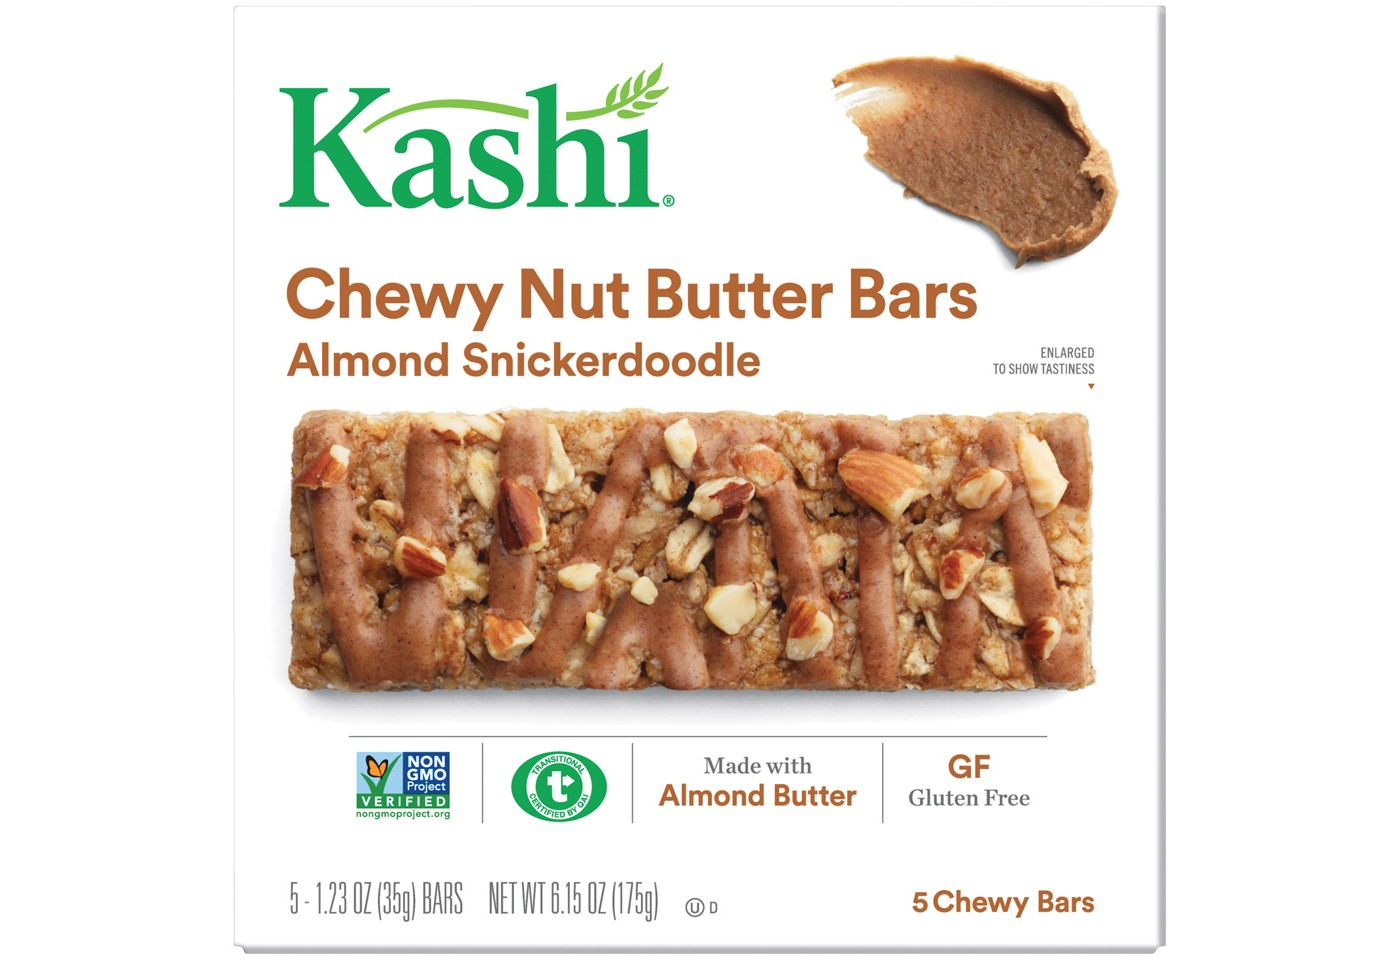 Kashi Almond Snickerdoodle Chewy Nut Butter Bars - 5ct - image 1 of 6